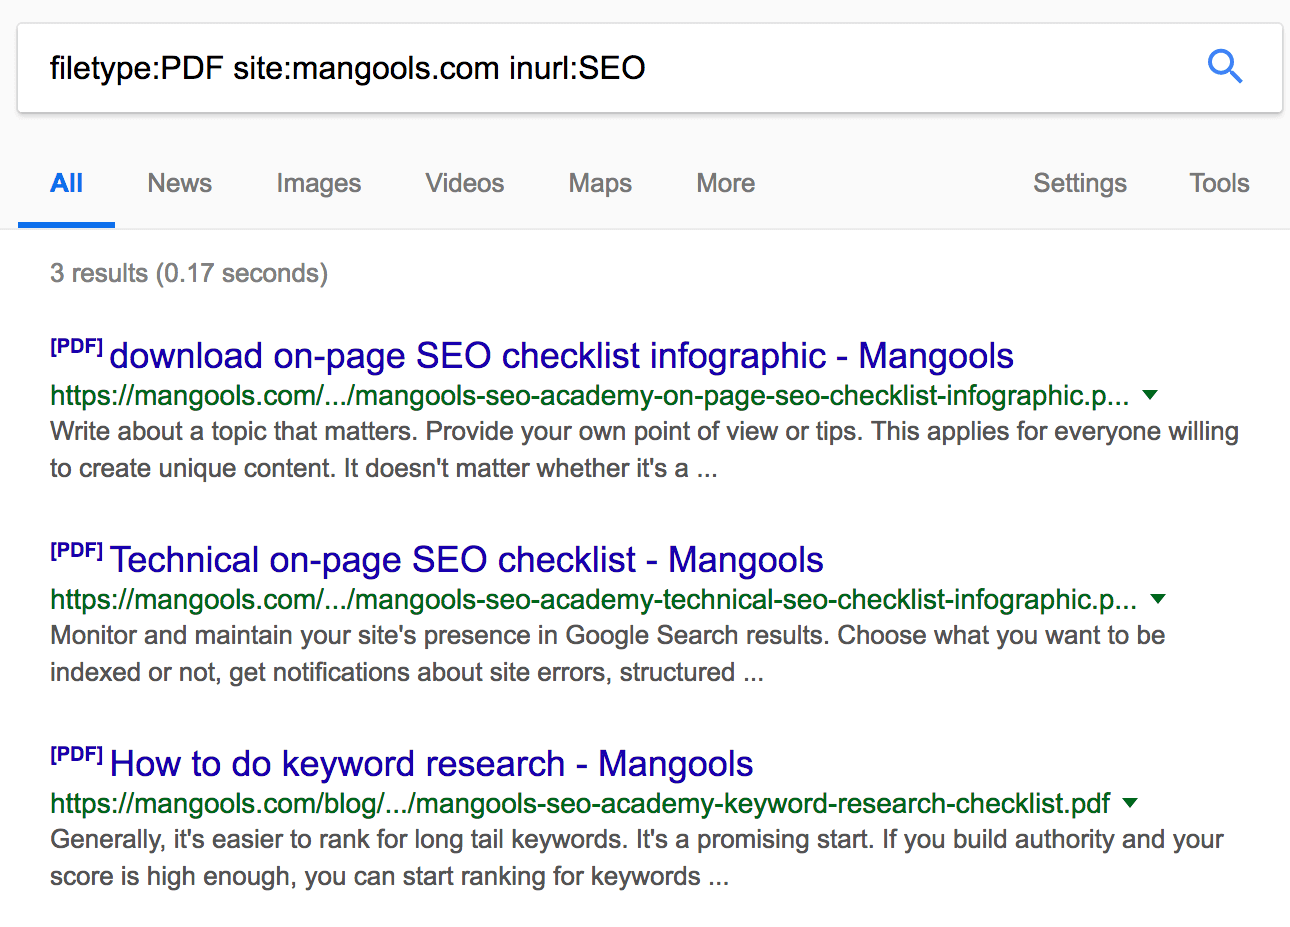 The Most Useful Google Search Operators for SEO | Mangools